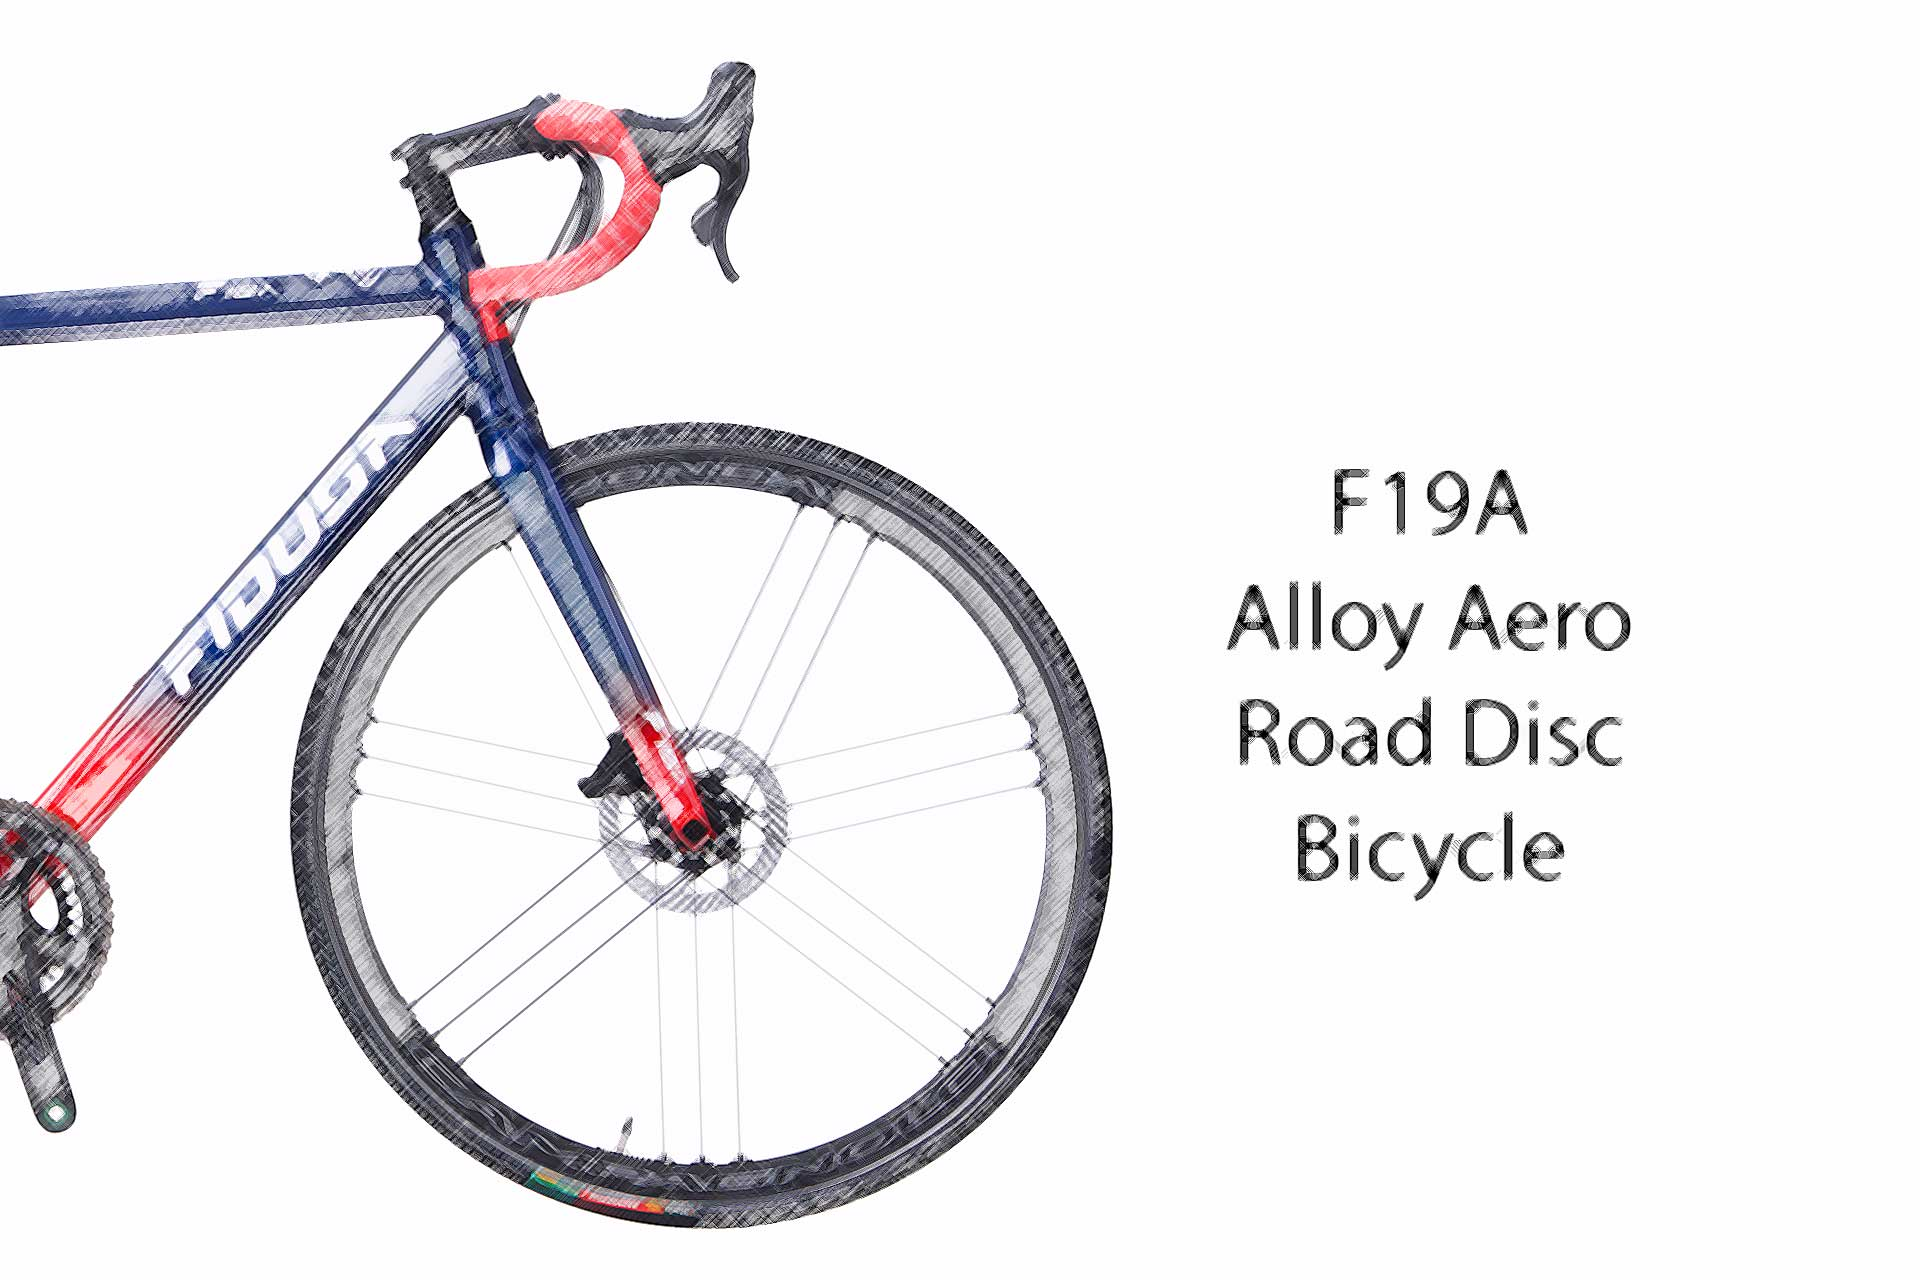 STATHIS-ALLOY-land-CLEAR-ENG F19A Alloy Aero Road Disc Bicycle